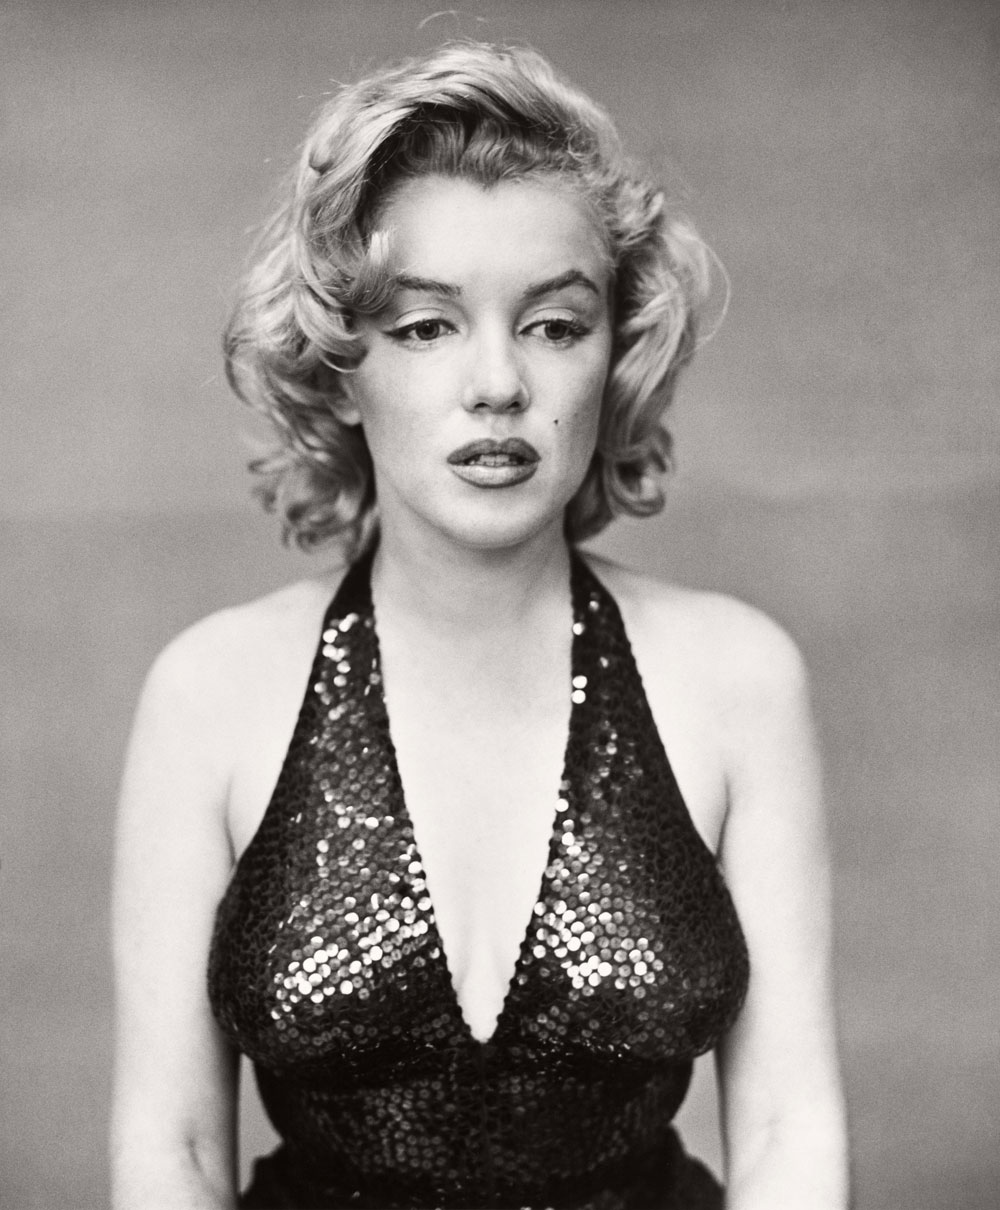 Marilyn Monroe, 1926-1962. She mostly smiled in her photographs, but perhaps this was more the real her